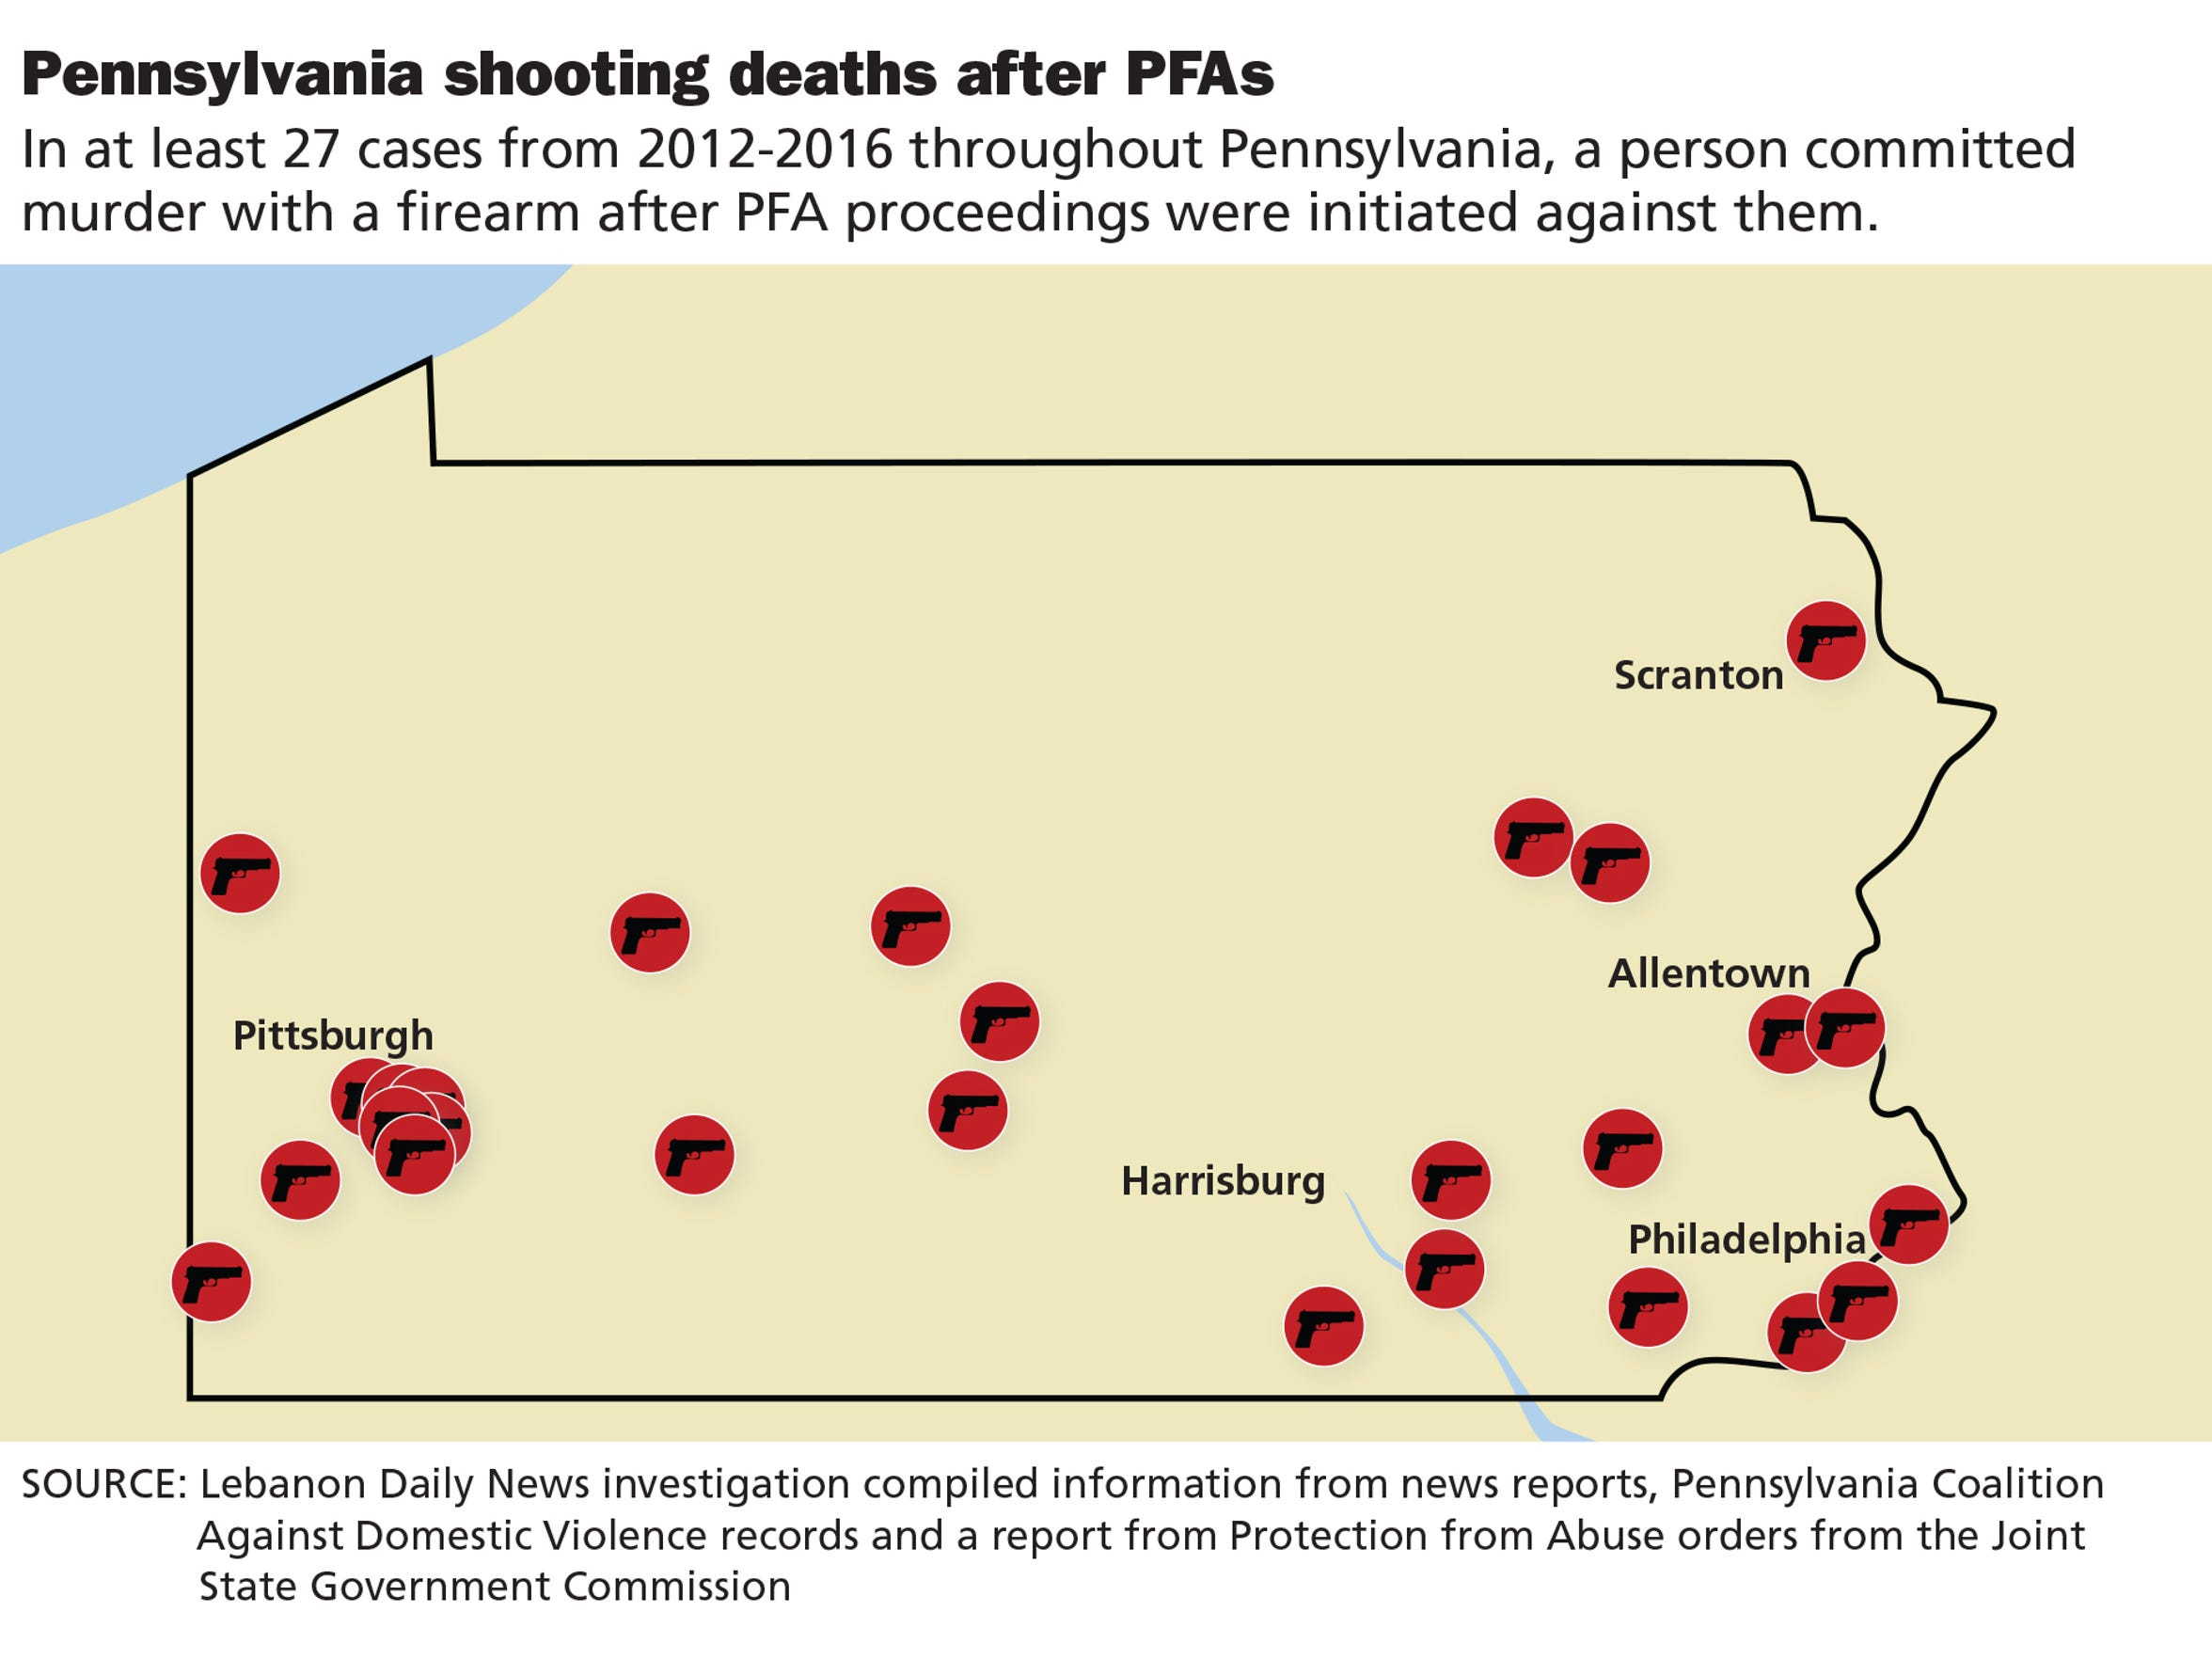 Domestic violence in Pennsylvania